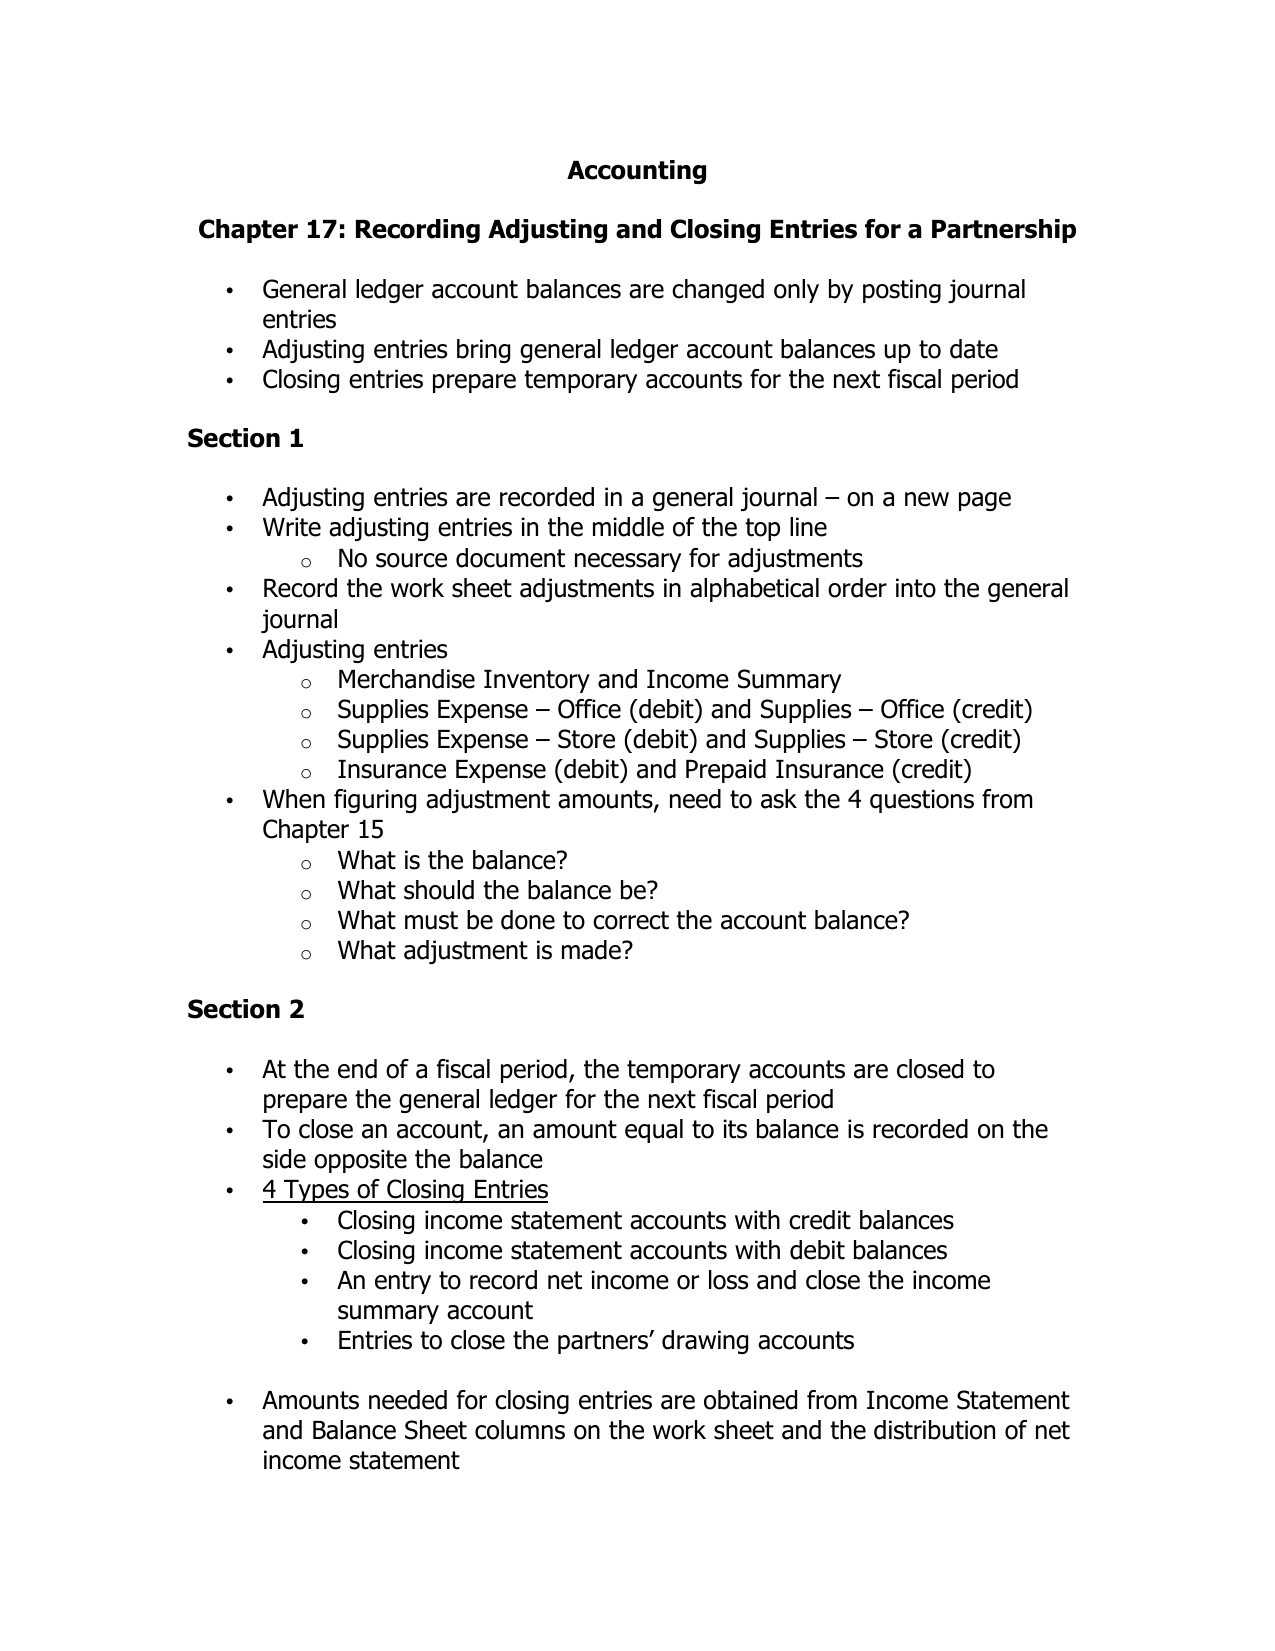 Accounting Lecture 12 - Division of Partnership Profit and ...  |Accounting Journal Entries For Partnerships